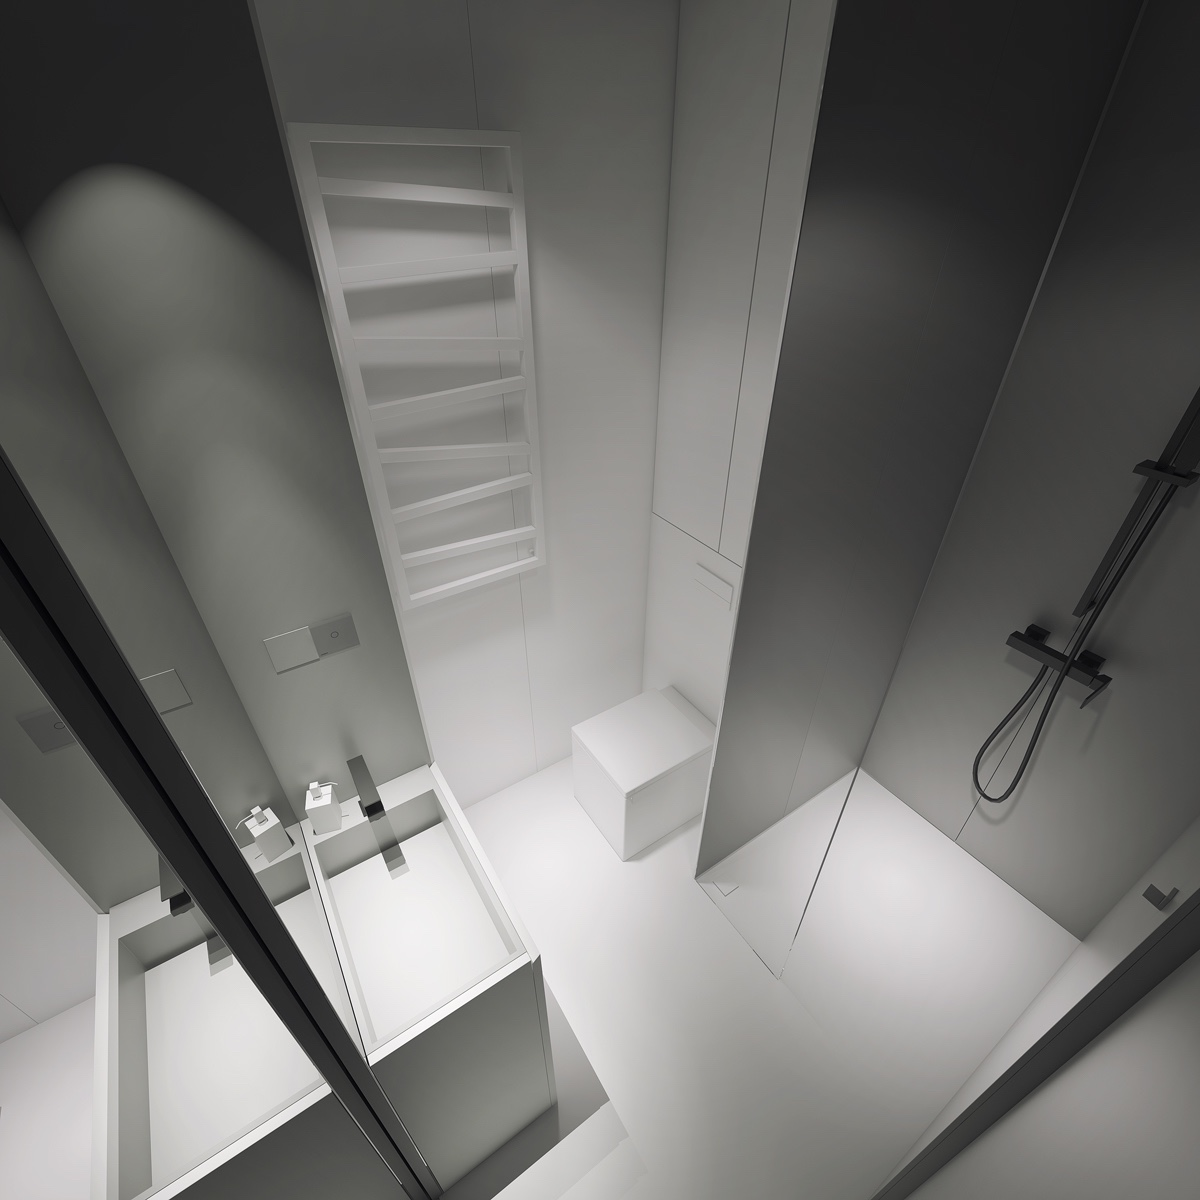 3 light white and minimalist homes inspiring clarity of mind - Bathrooms small spaces minimalist ...